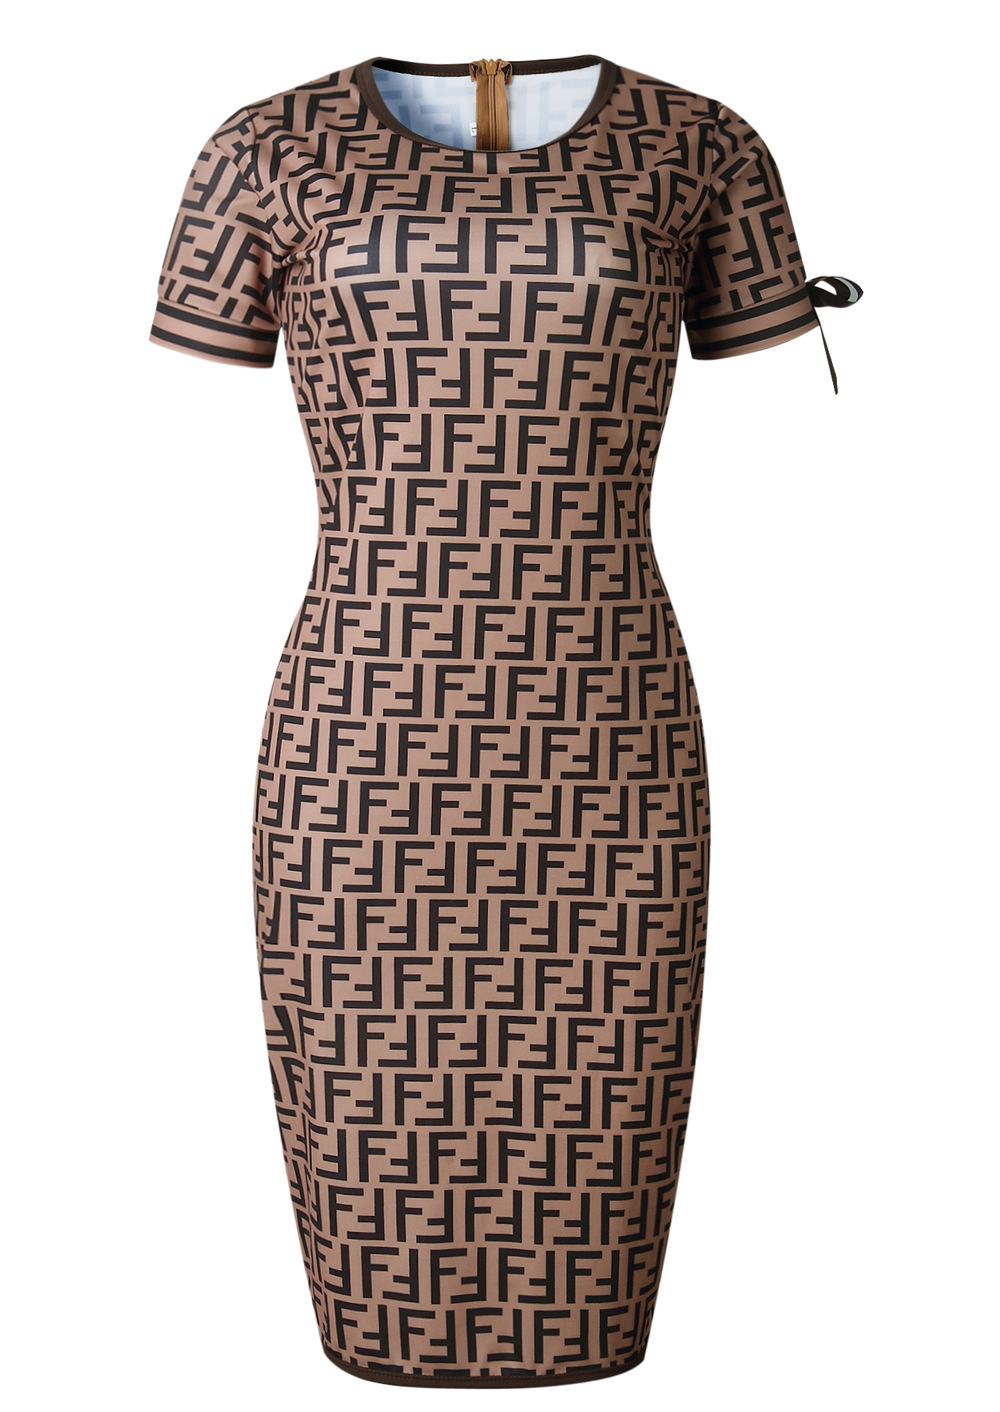 New European And American-Style Fashion Digital Printed Commuter Dress